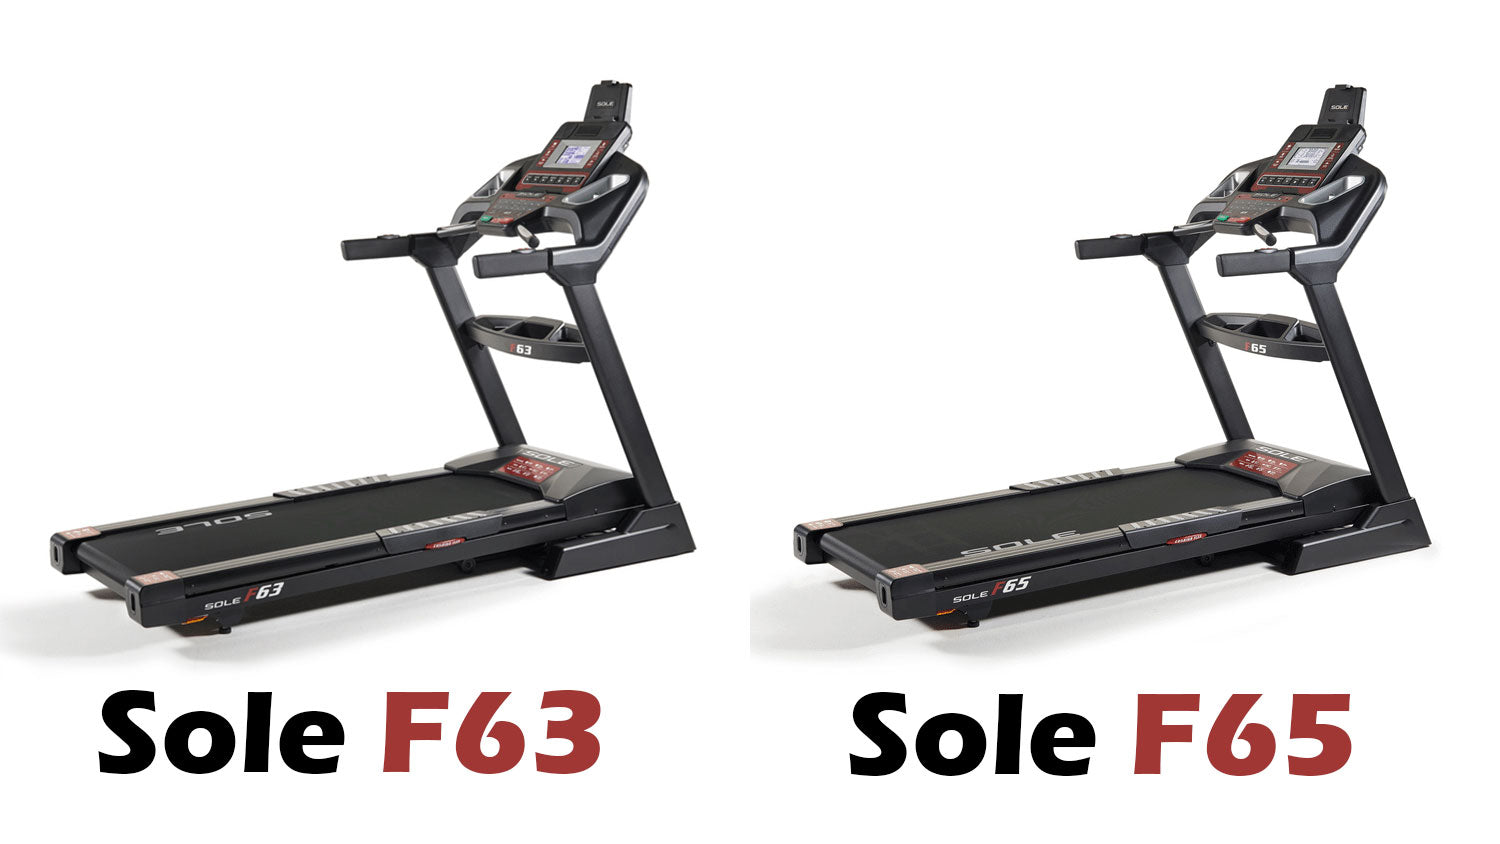 Sole F63 vs Sole F65 Treadmill Comparison